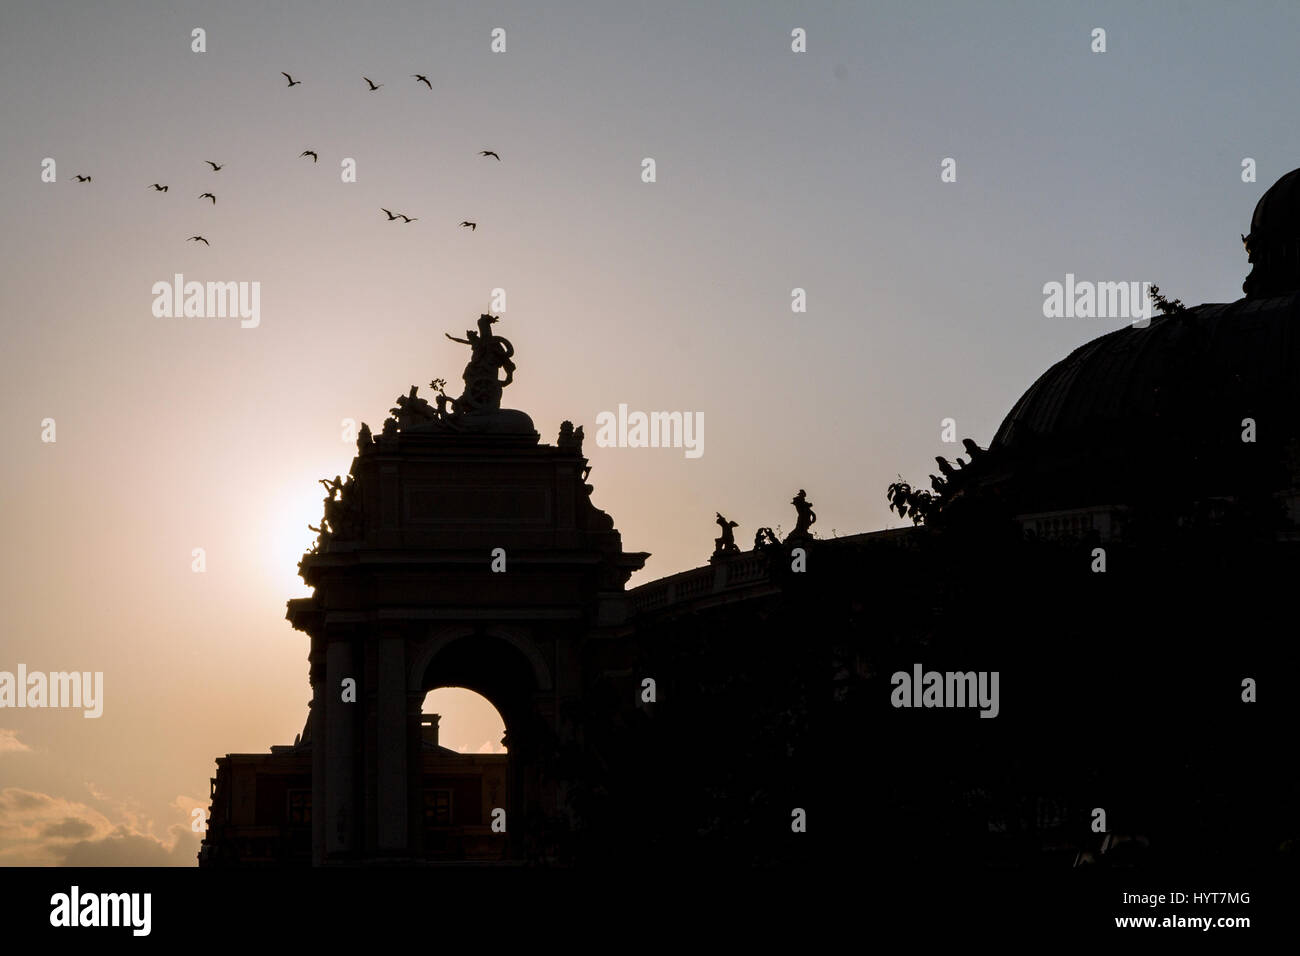 Sunset on the Odessa National Academic Theatre of Opera and Ballet , Ukraine  Silhouette of the National Theatre - Stock Image